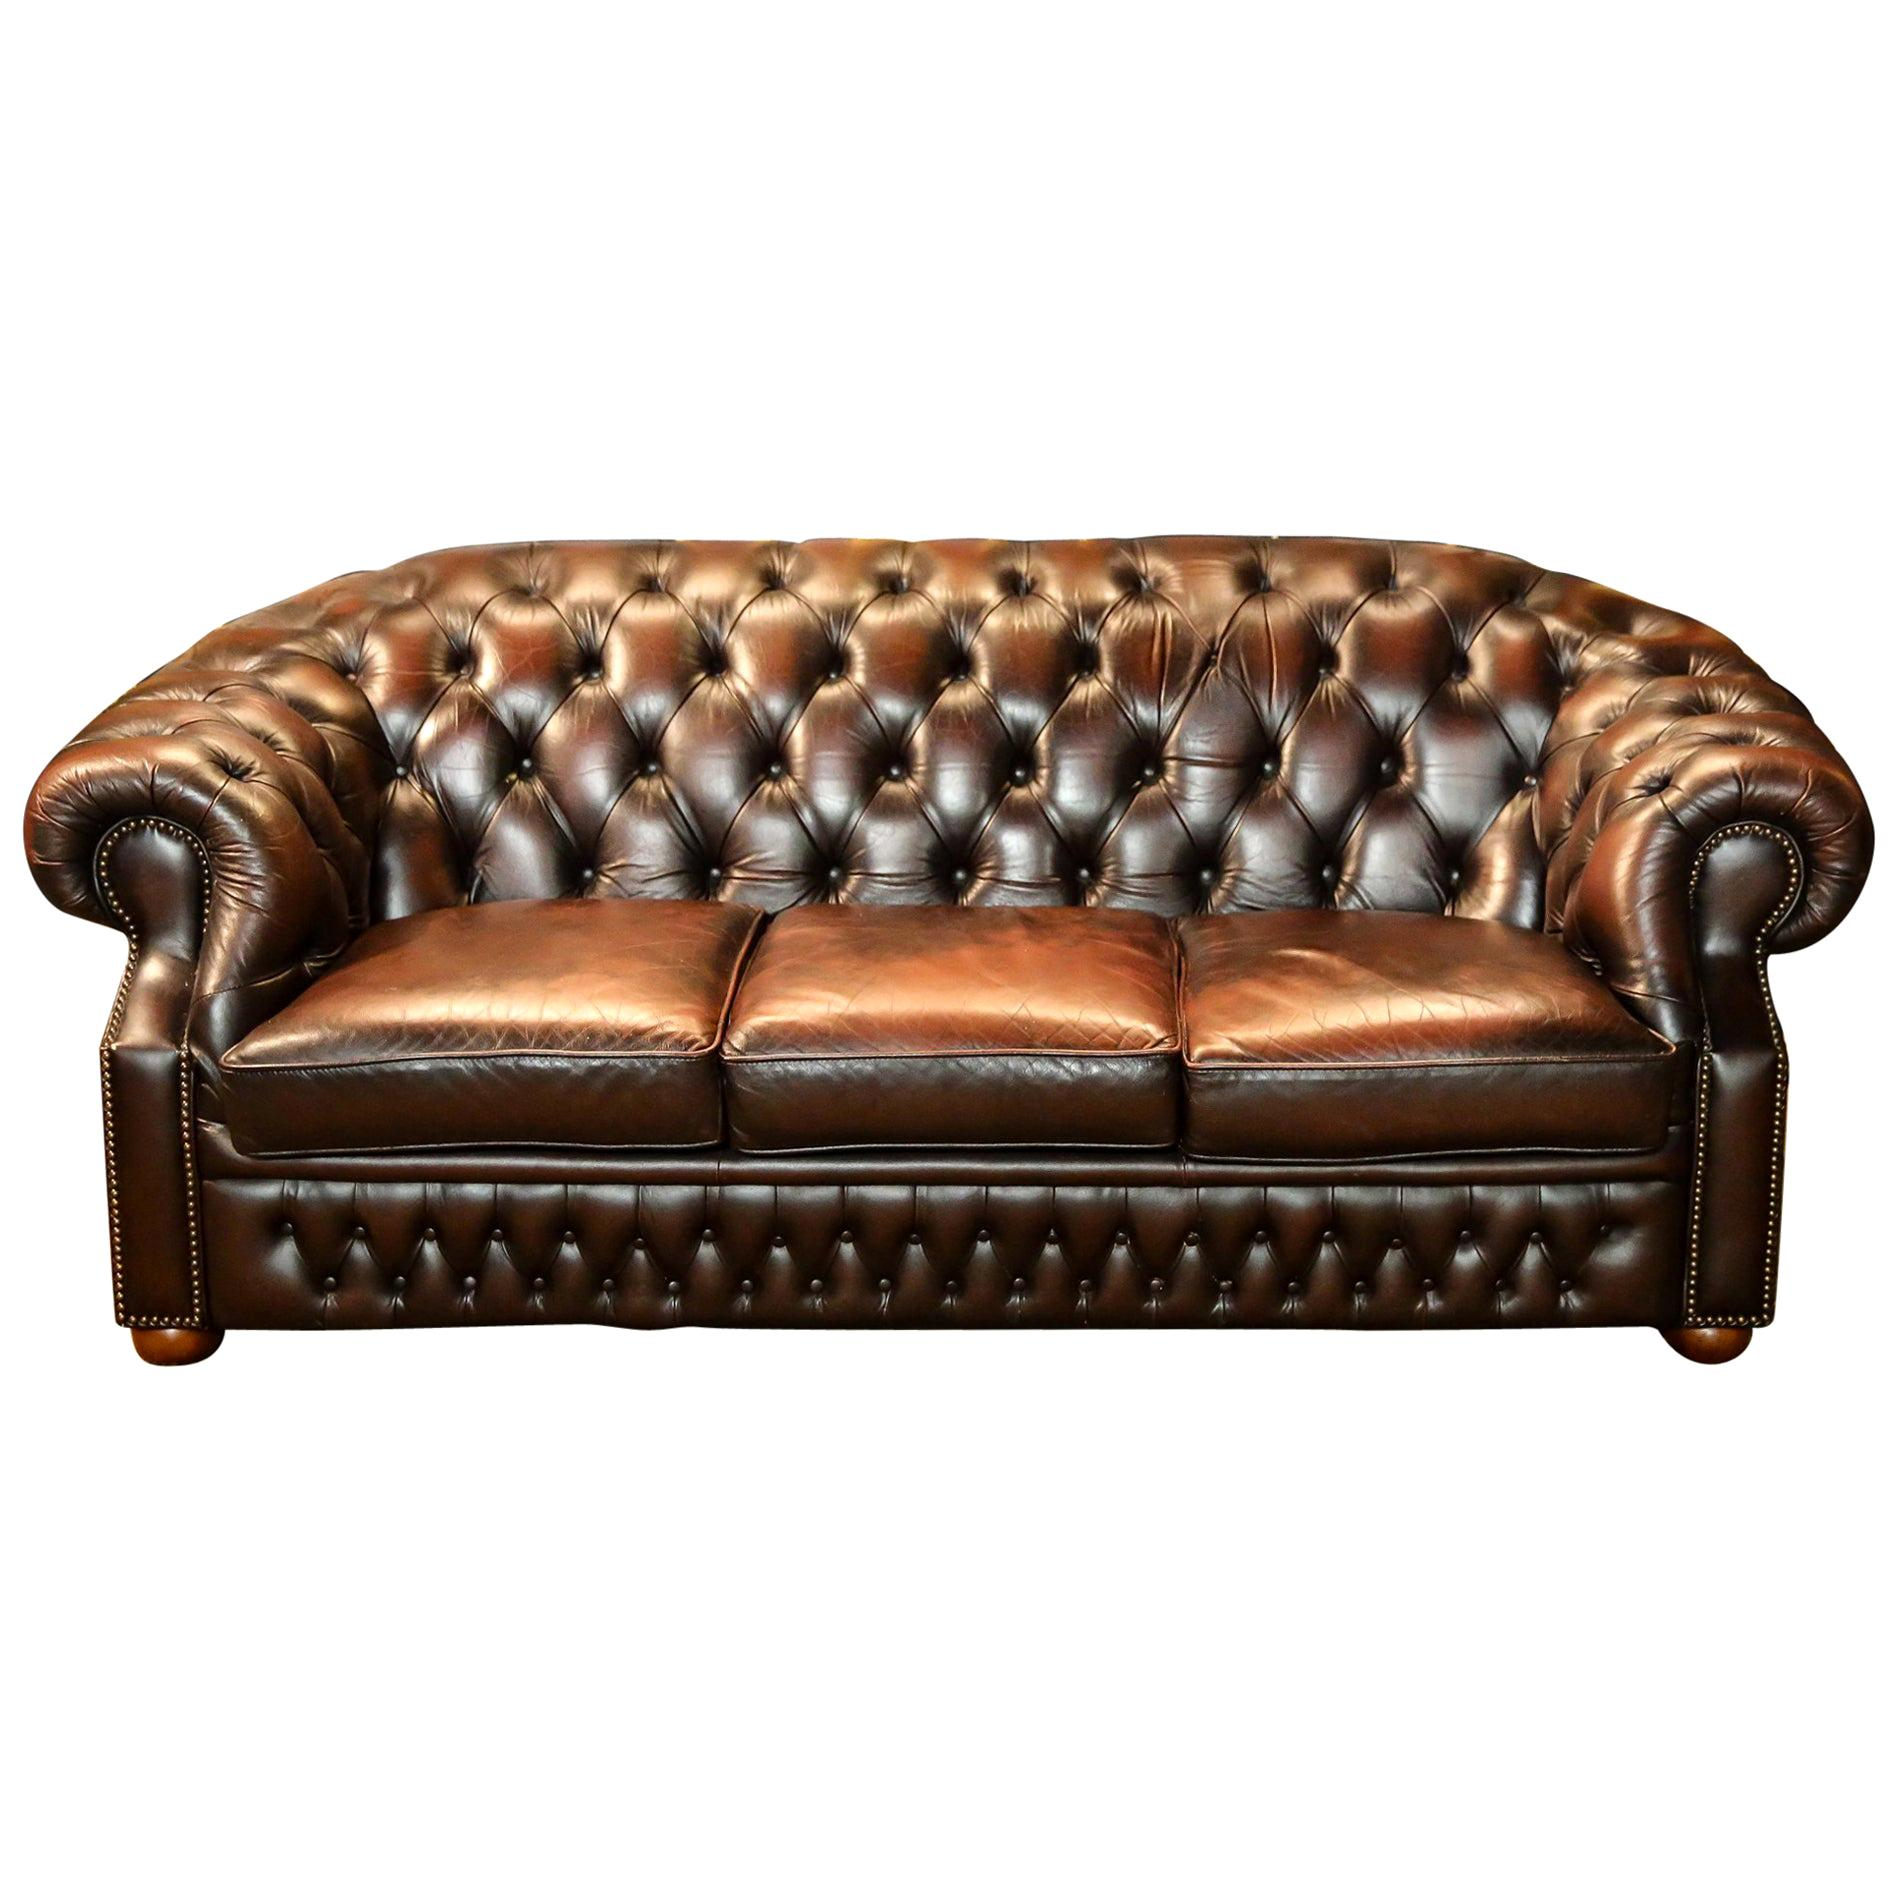 Fantastic Chesterfield 3 Seat Sofa Kent Modell Brand By Centurion Forskolin Free Trial Chair Design Images Forskolin Free Trialorg